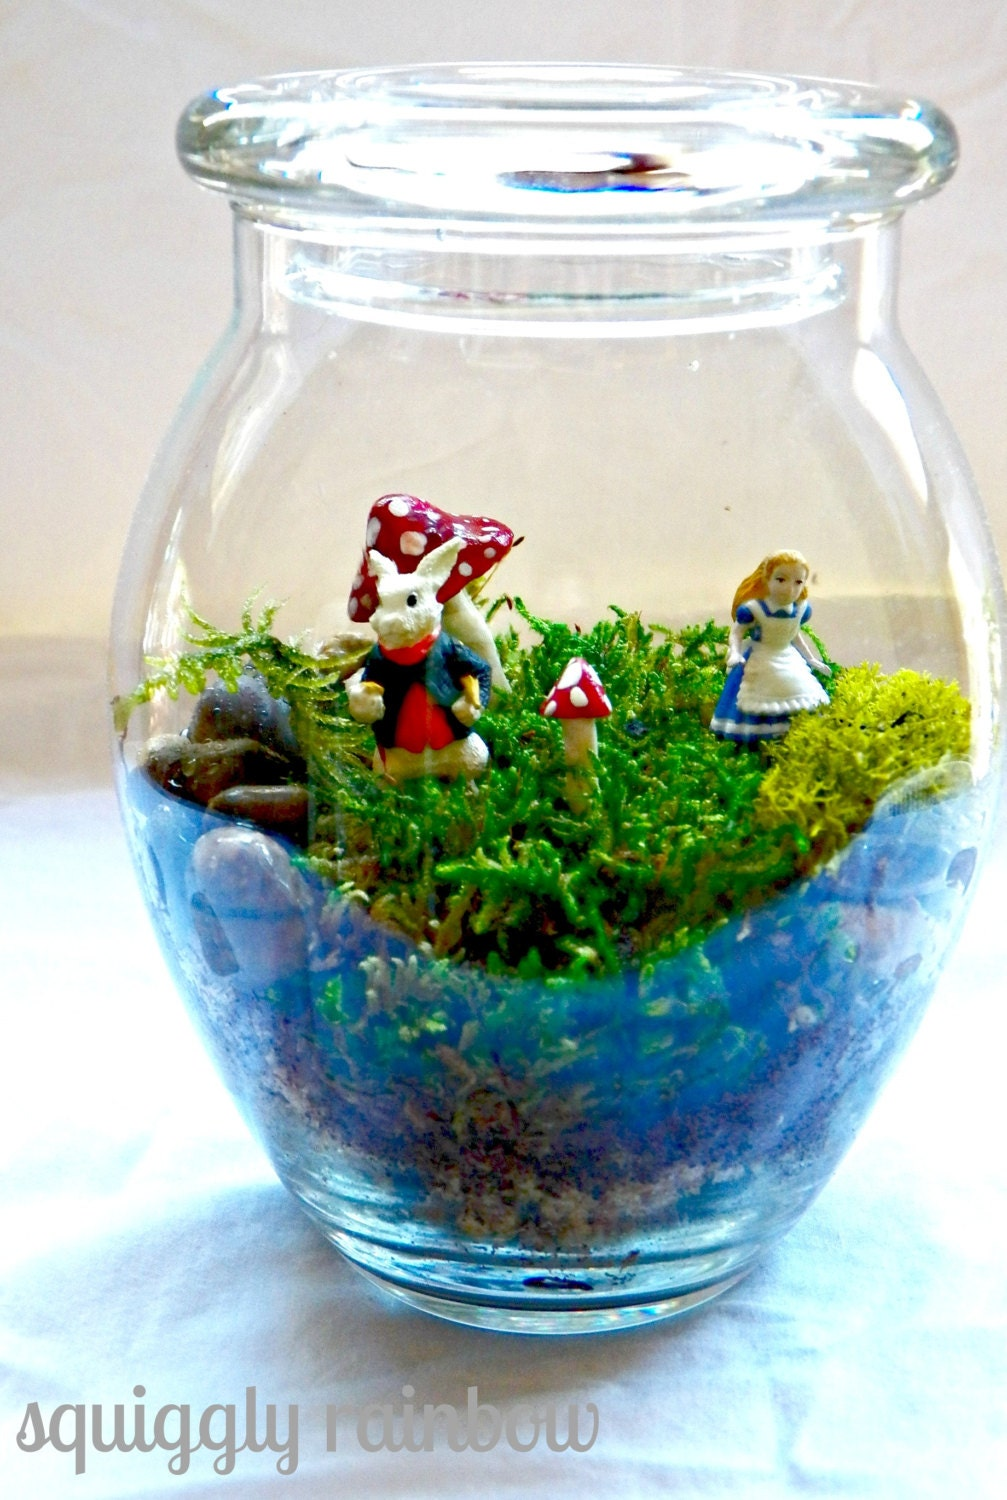 alice in wonderland terrarium mini miniature garden jar mushroom